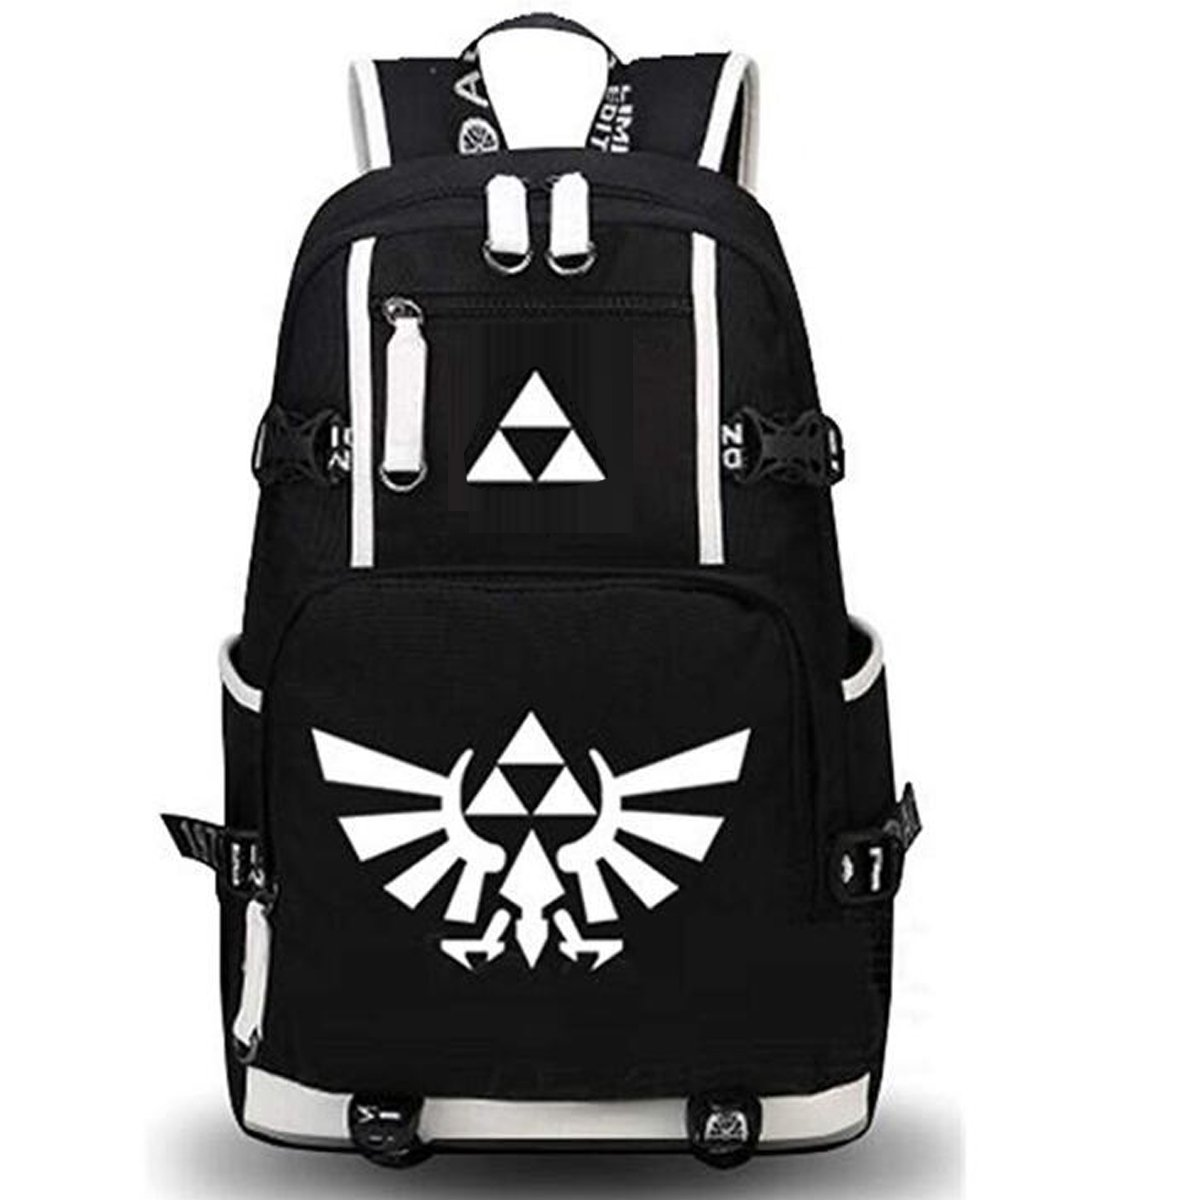 NSOKing Hot Legend of Zelda Triforce Cosplay Student Travel Backpack Bag (Length 13'' Height 17.3'' Width 5.9'', Black)